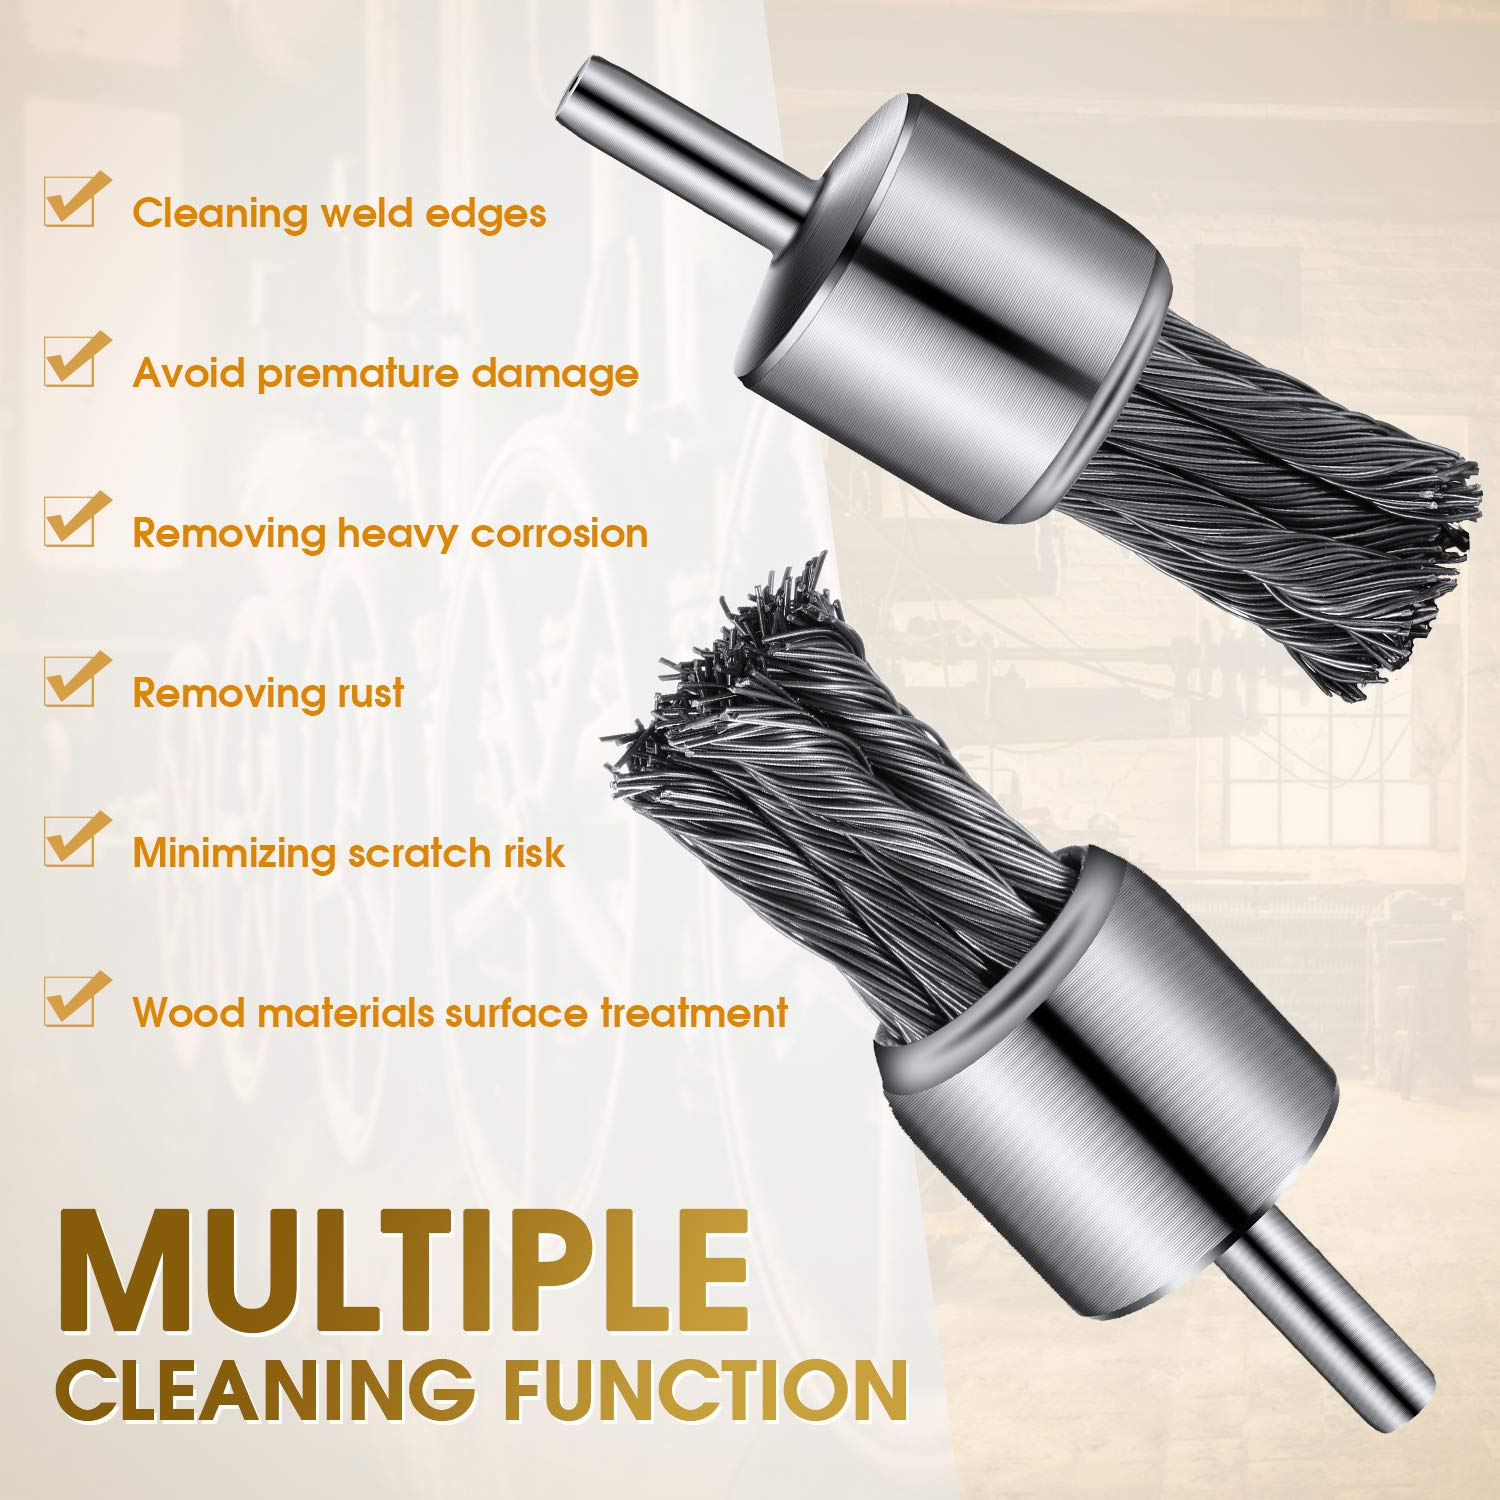 2 Pieces 1 Inch Wire Cup Brush Knotted Wire Brush Drill Bit Wire Brush Knot Drill Brush Accessories for Removal of Rust//Corrosion//Paint Cleaning